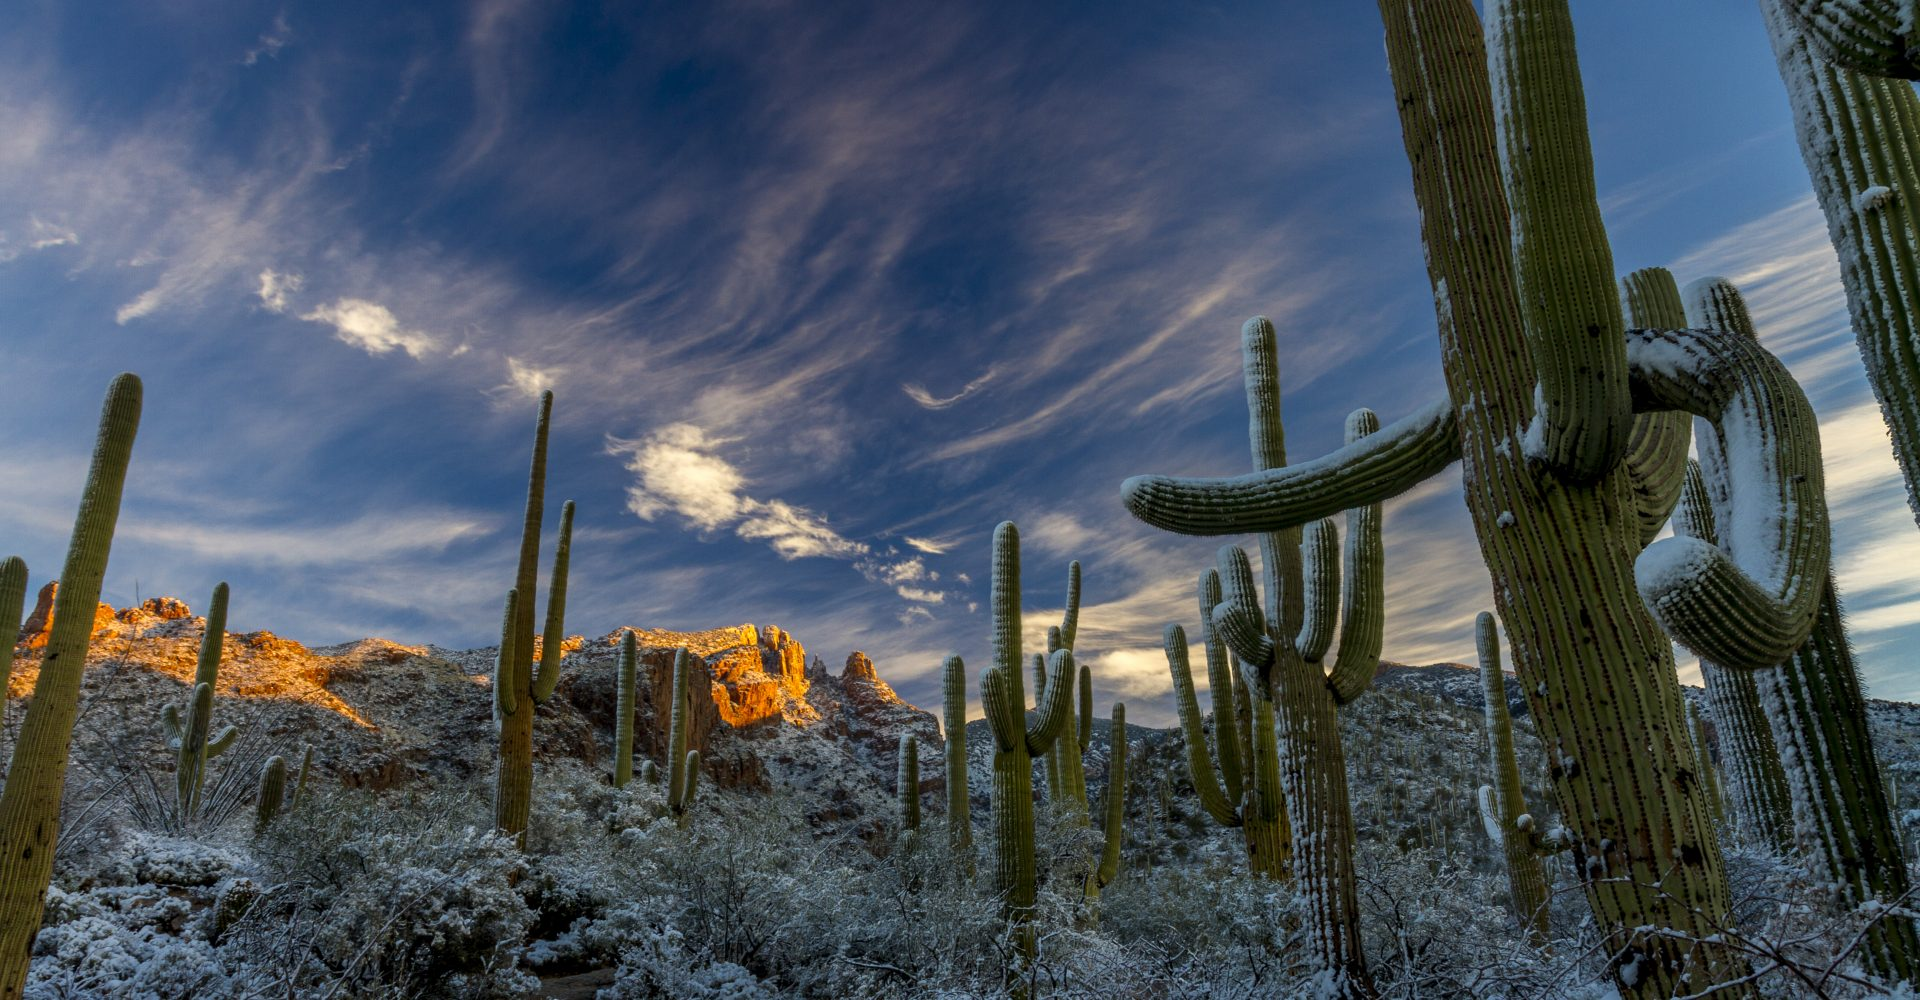 Rare Desert winter snow on giant saguaro cactus of the Sonoran Desert in Tucson Arizona on January 1, 2015. (Pete Gregoire, NOAA Small World Collection)